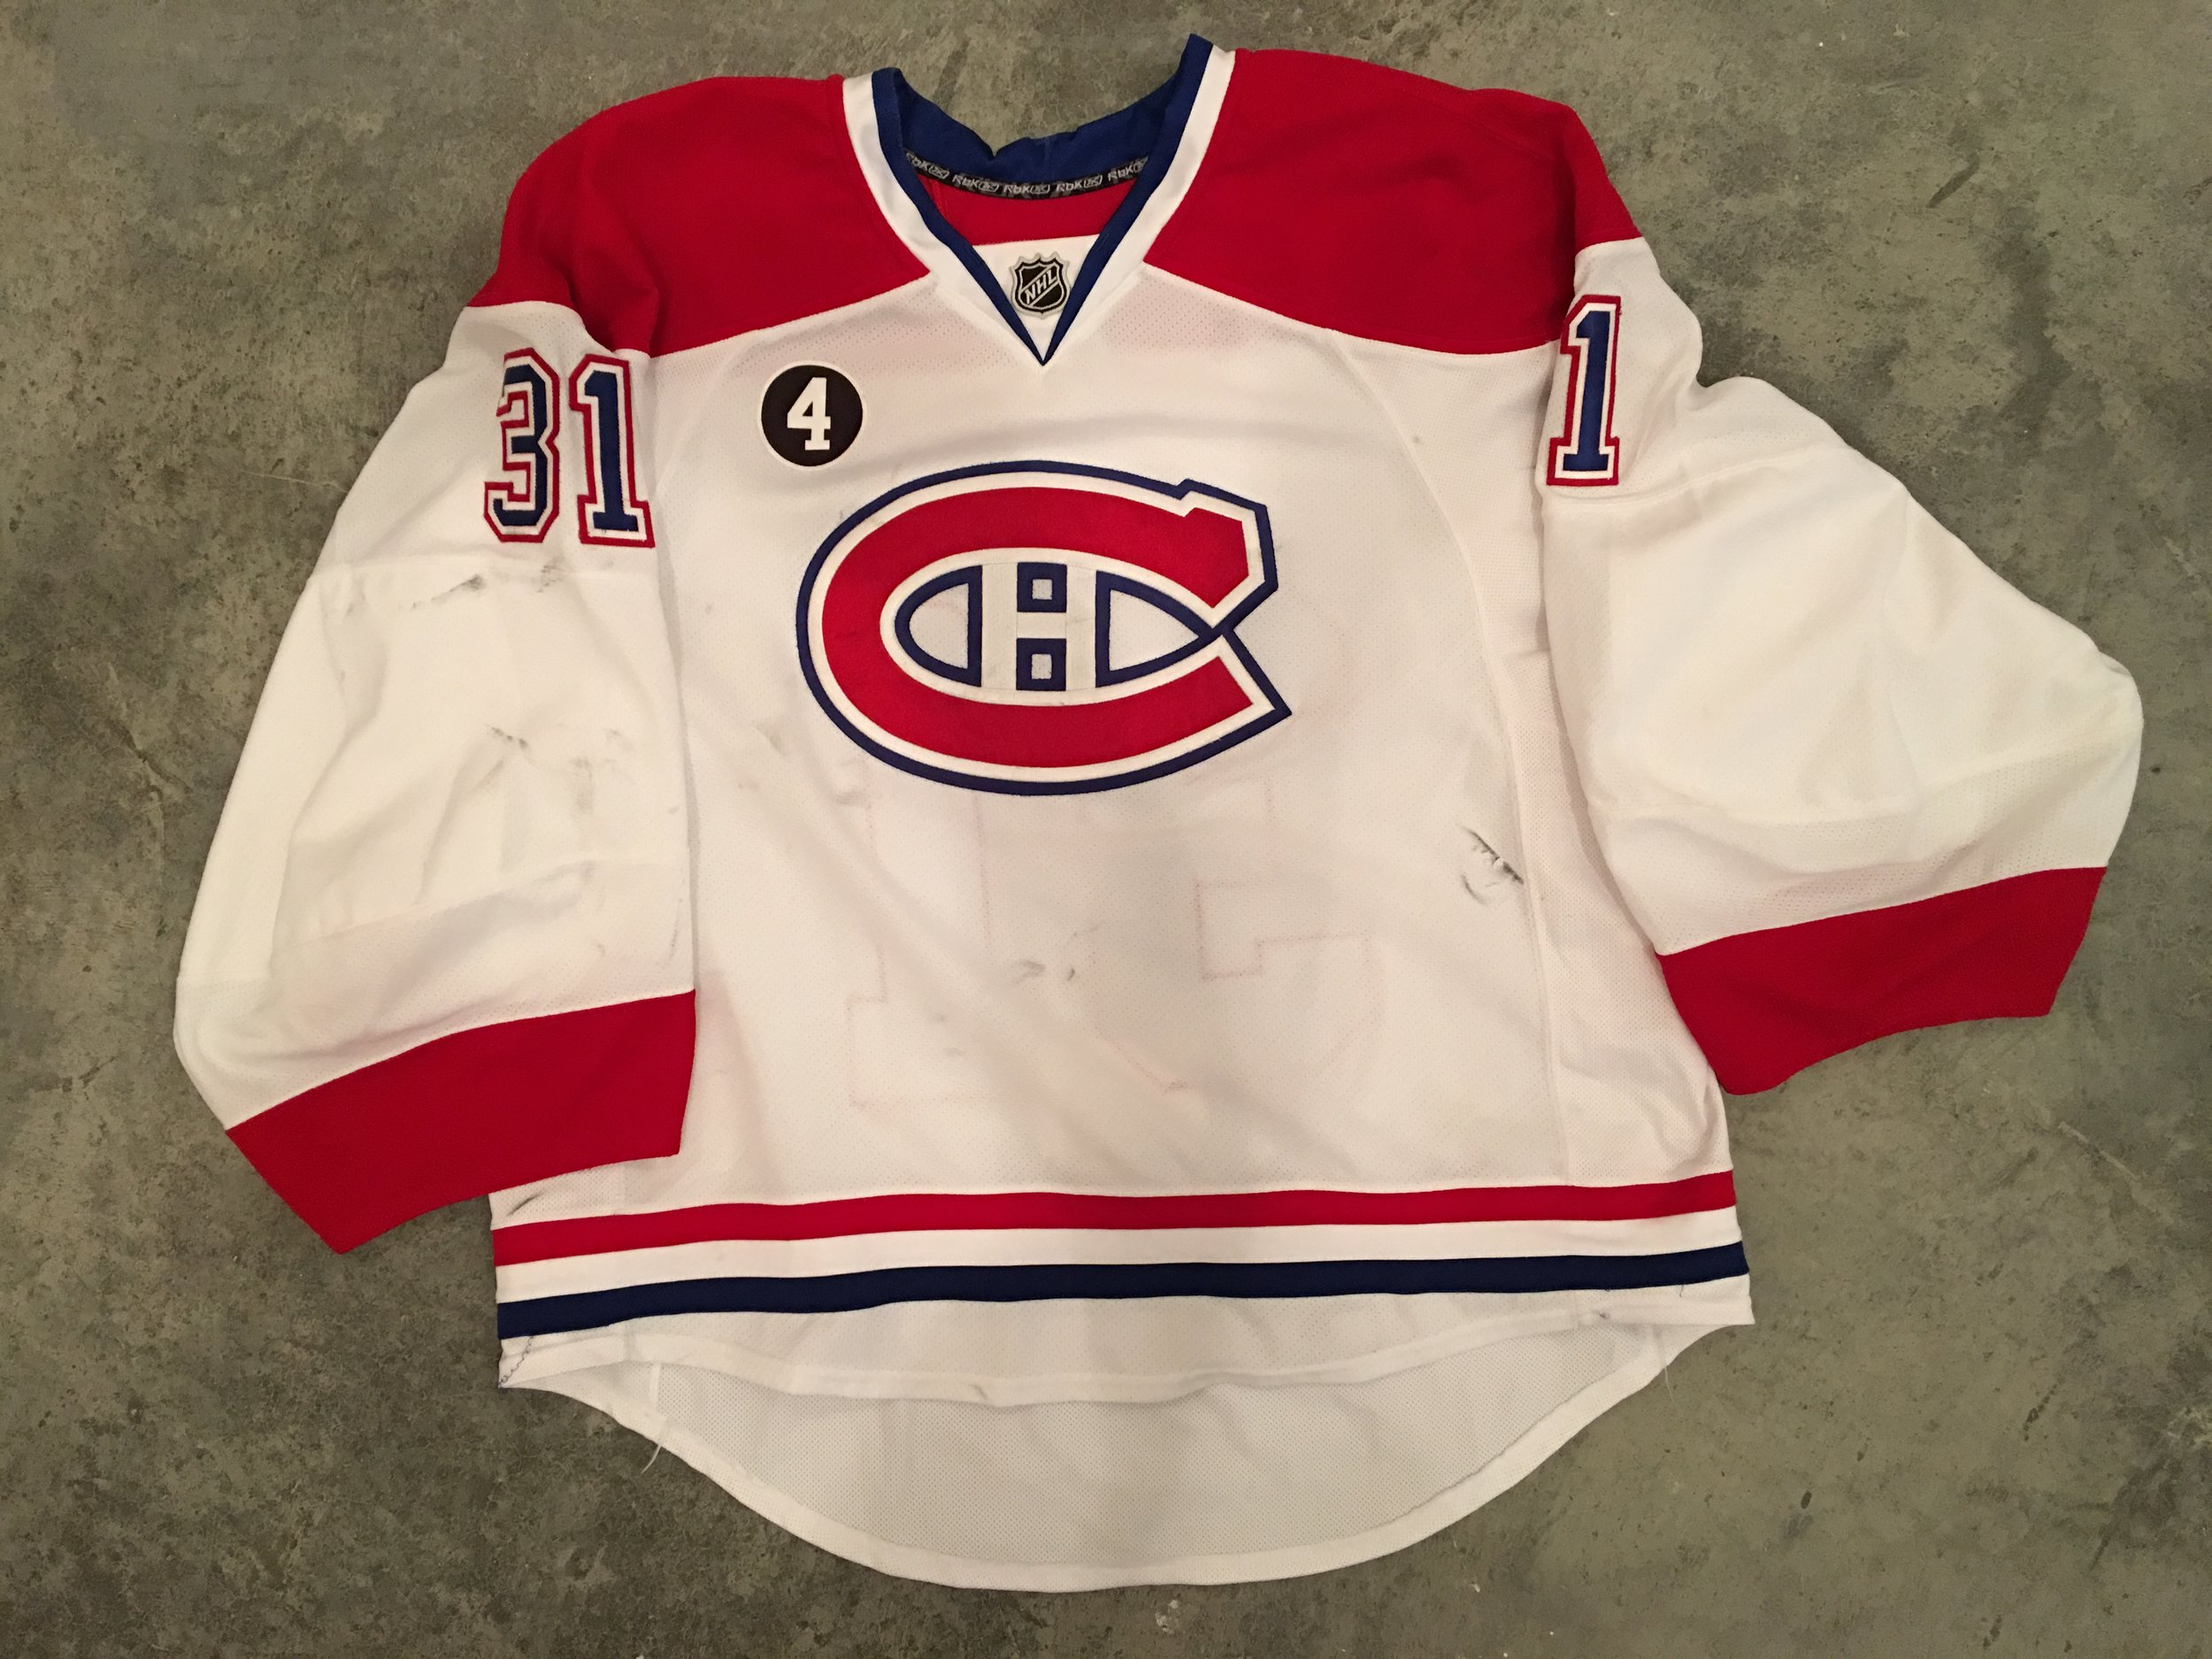 2014-15 Carey Price game worn road jersey with 4 - Jean Beliveau patch